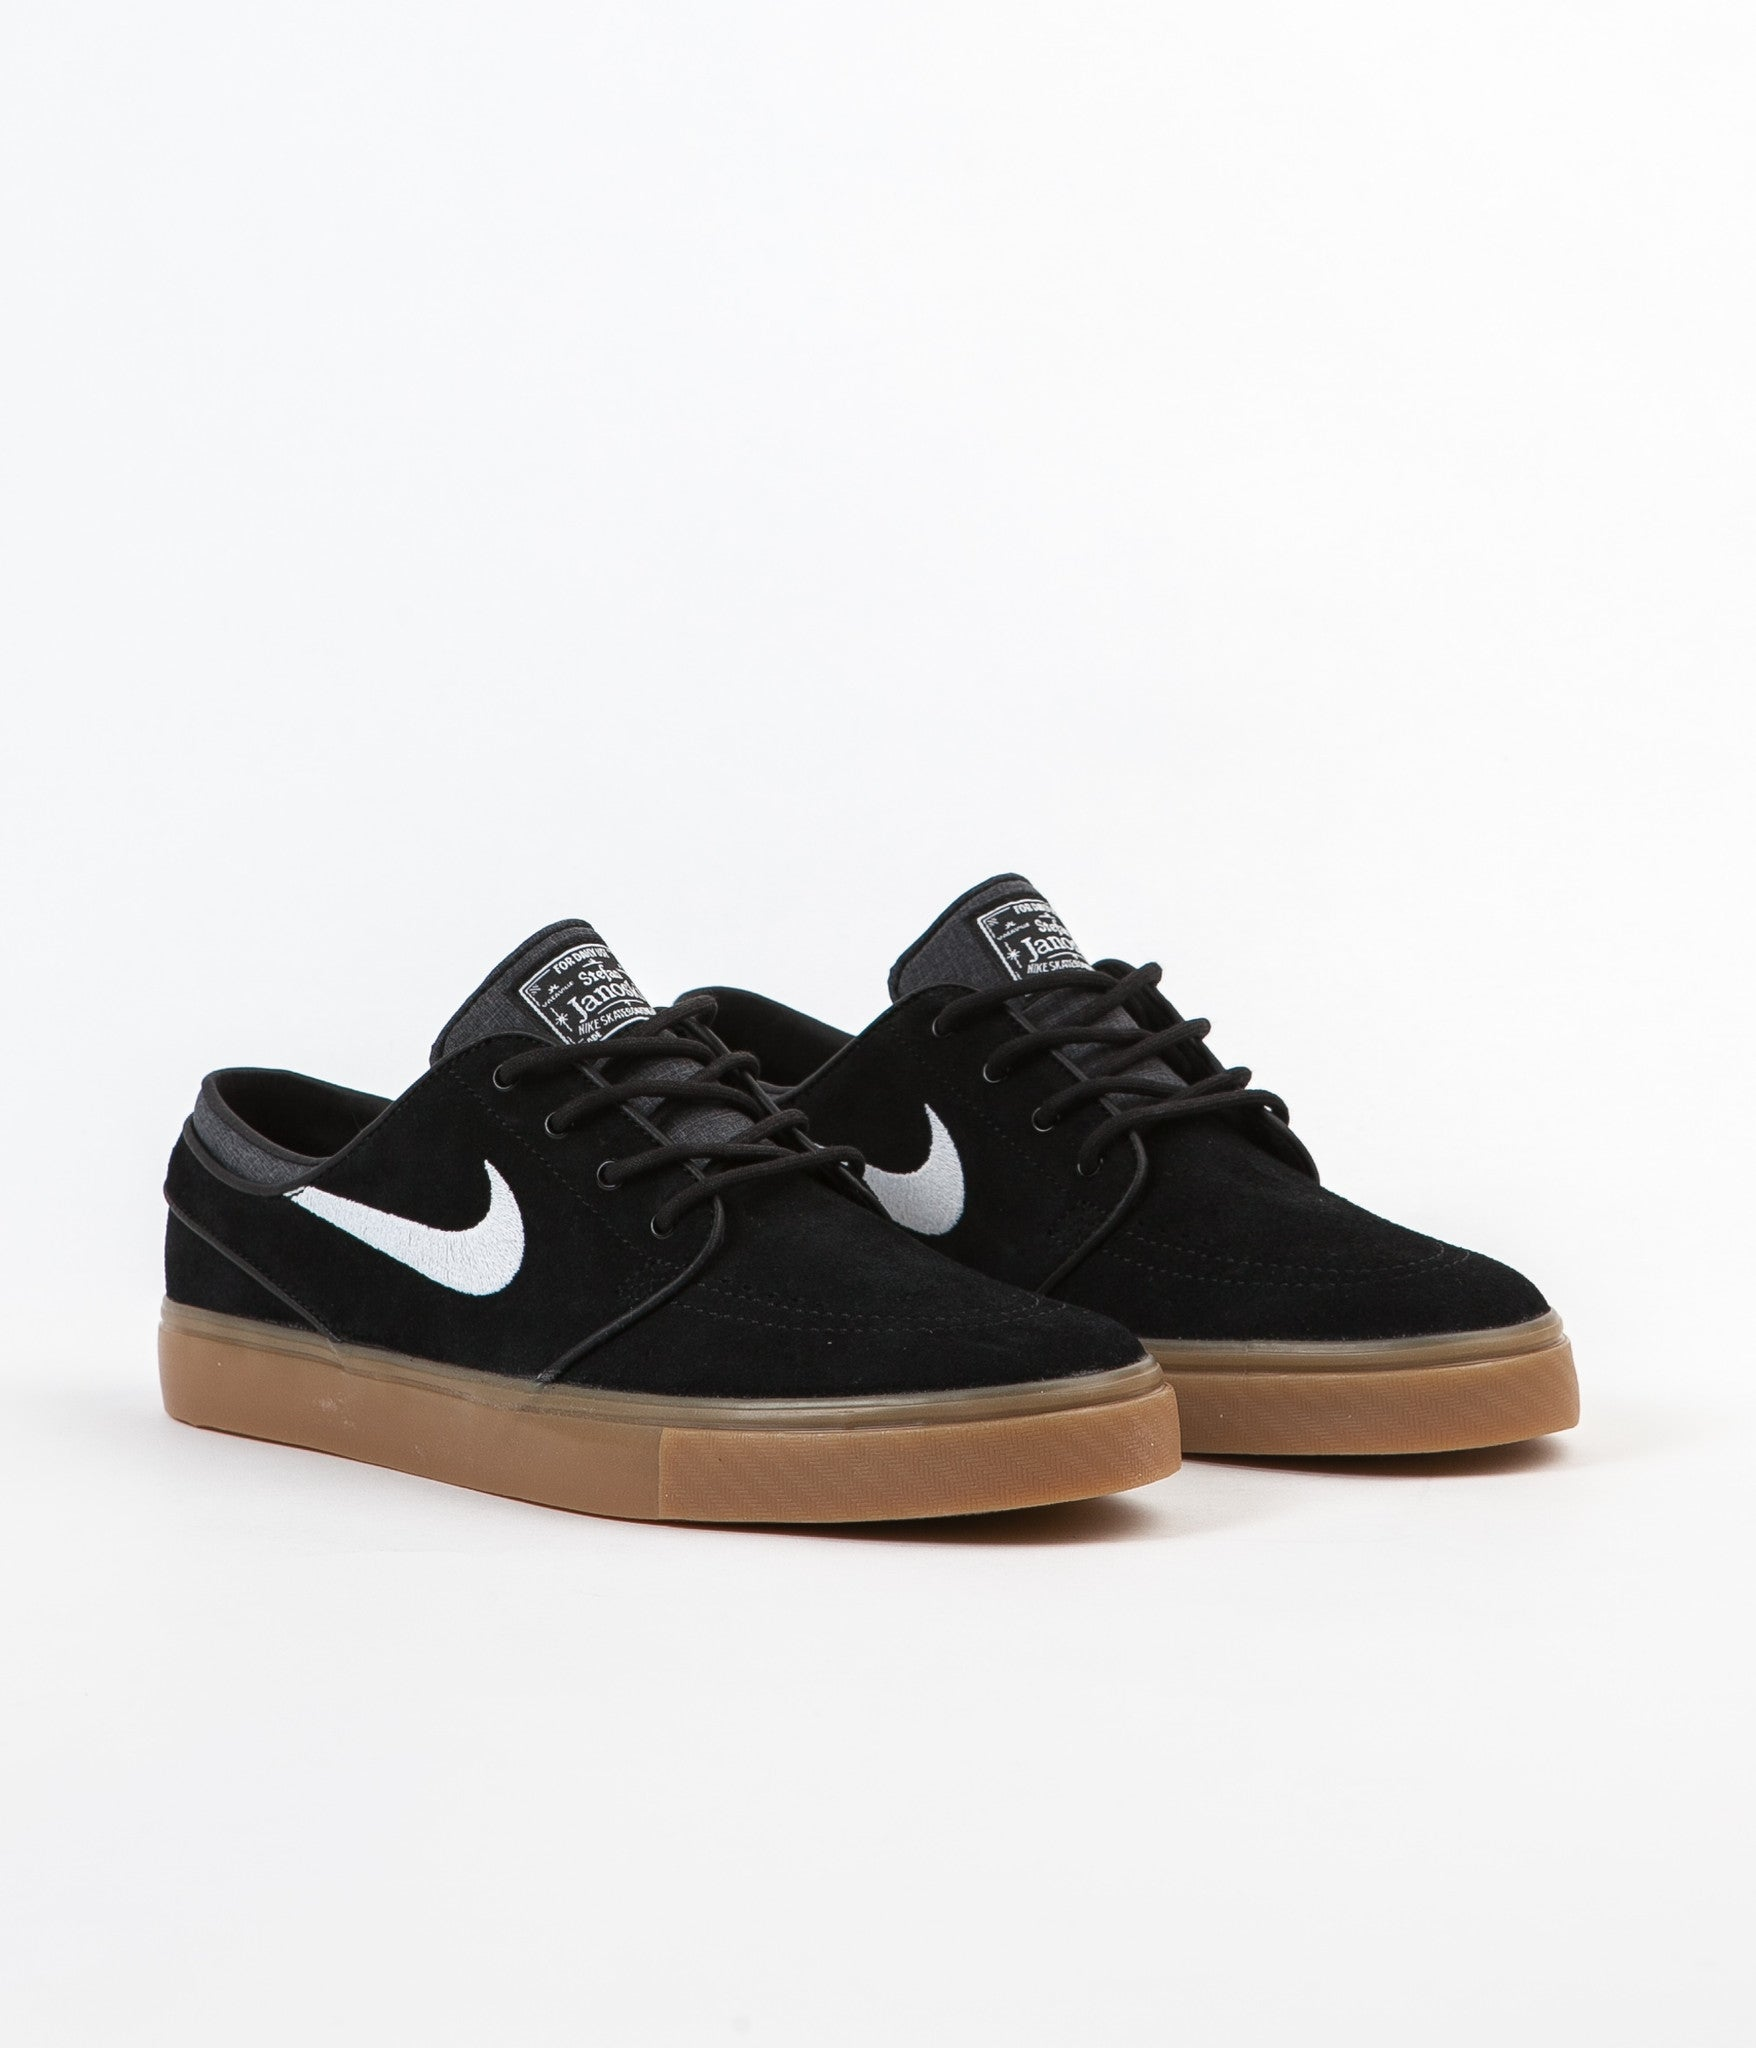 best supplier fashion styles discount sale Nike SB Stefan Janoski Shoes - Black / White - Gum Light ...